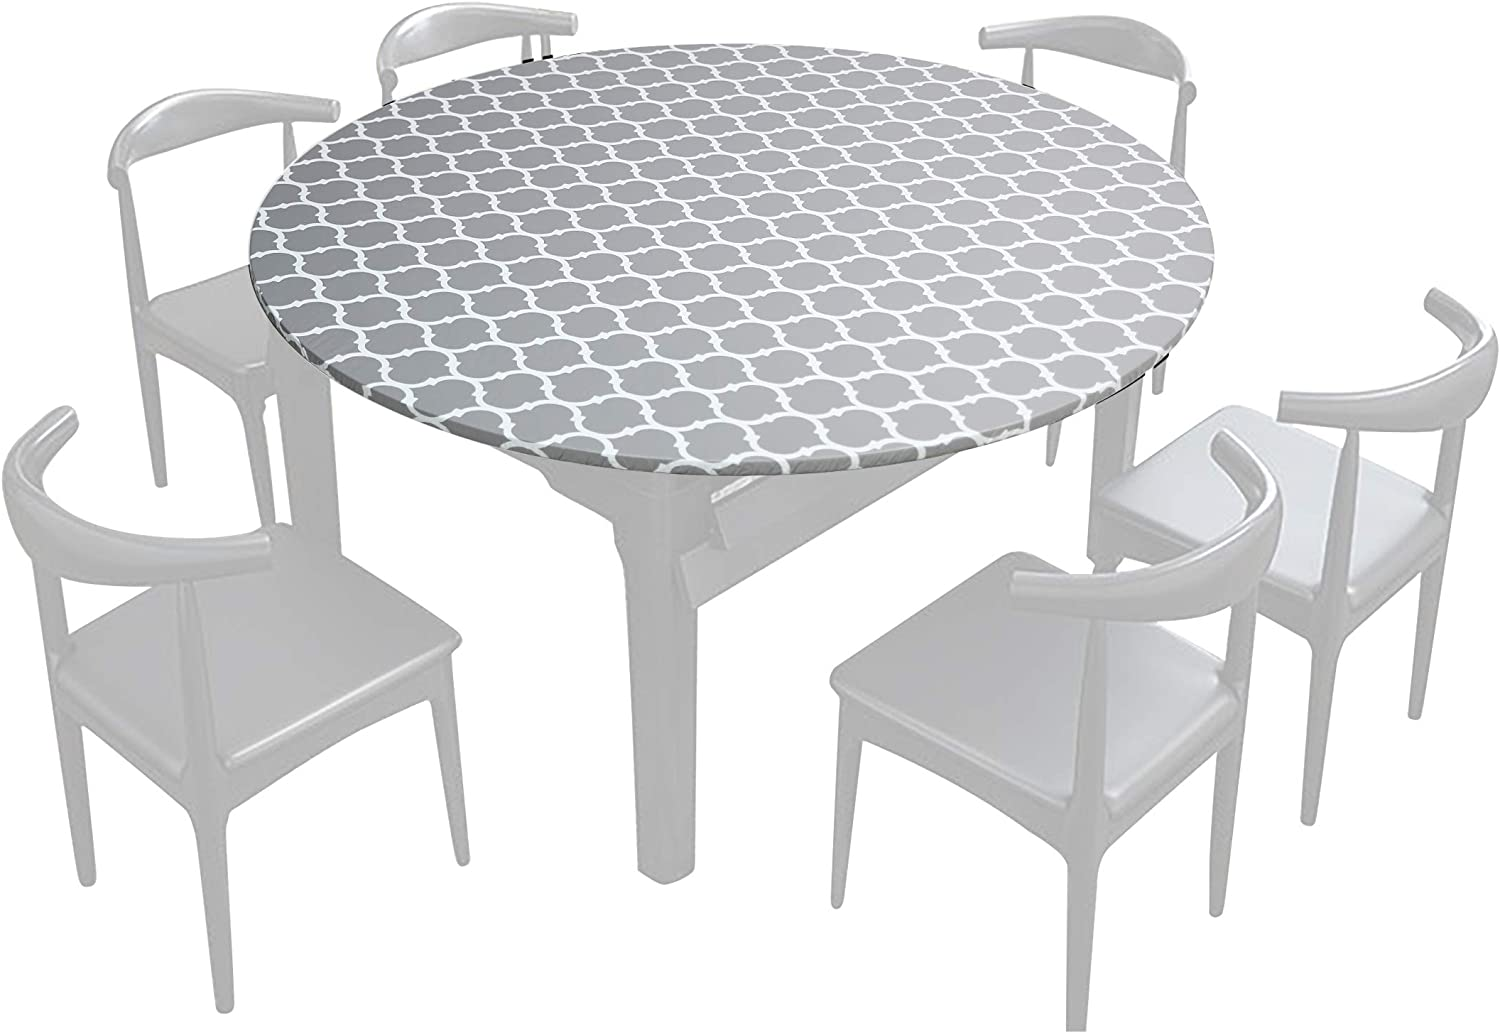 Waterproof Wipeable Plastic Cover,Grey Stripes for 5-Seat Table of 36-43 Diameter Elastic Edge Indoor Outdoor Patio Round Fitted Vinyl Tablecloth Flannel Backing